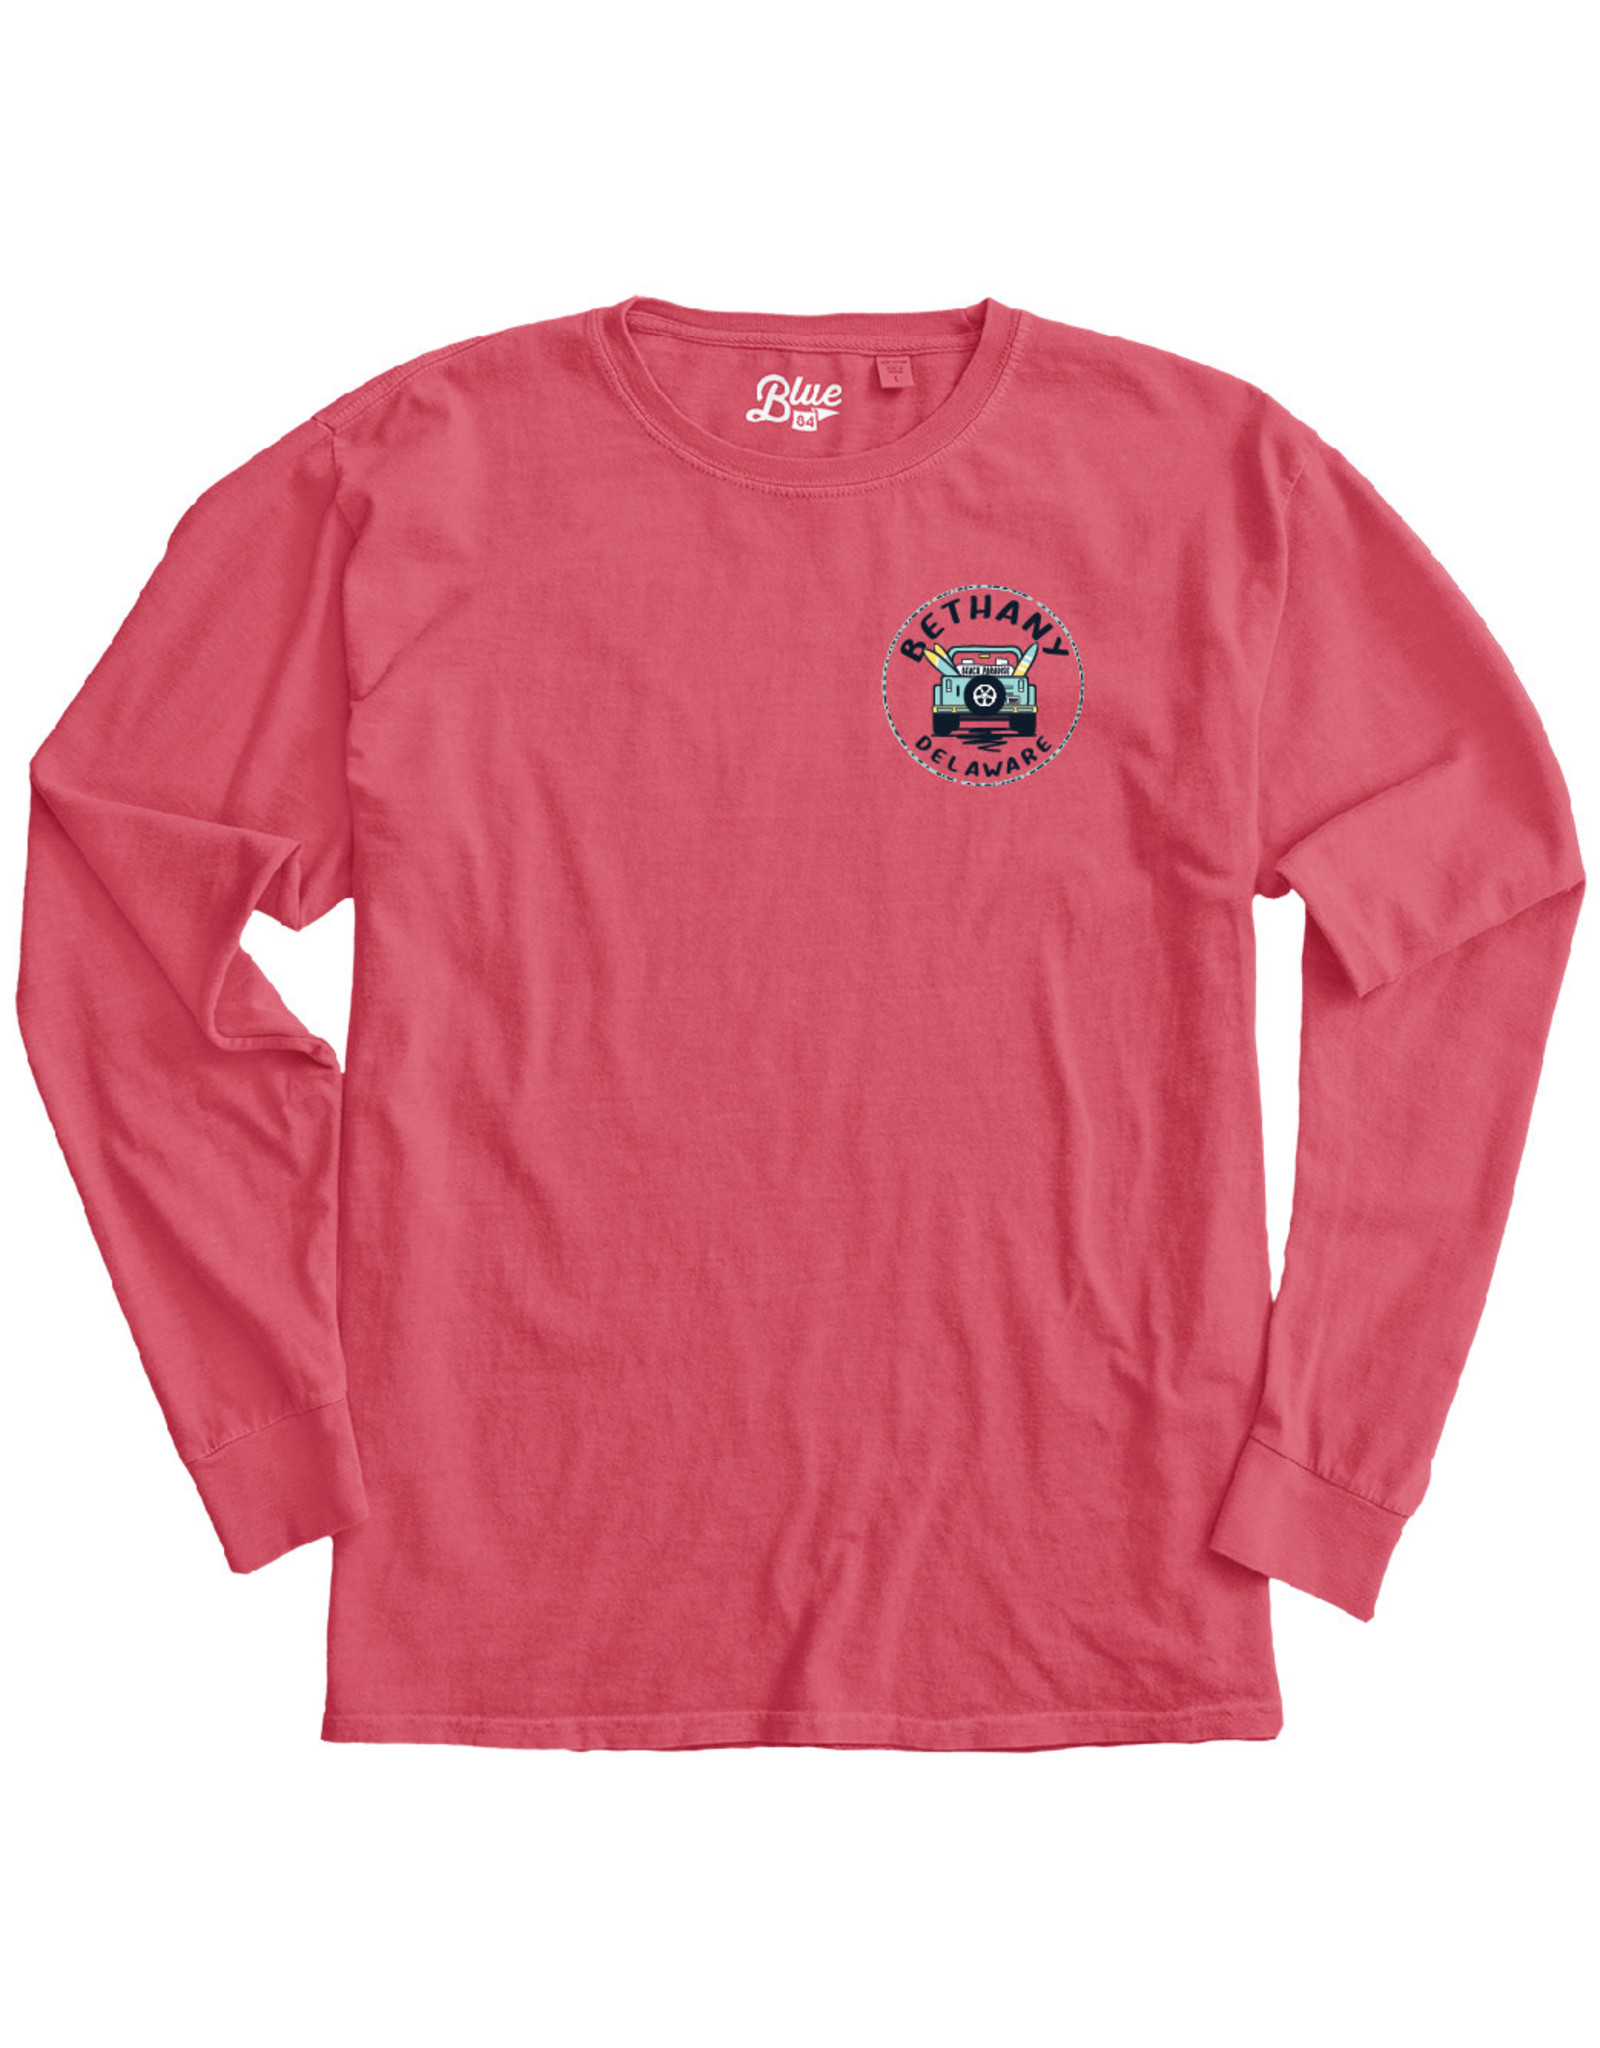 BLUE 84 BETHANY CONCURRENCE JEEP LS TEE